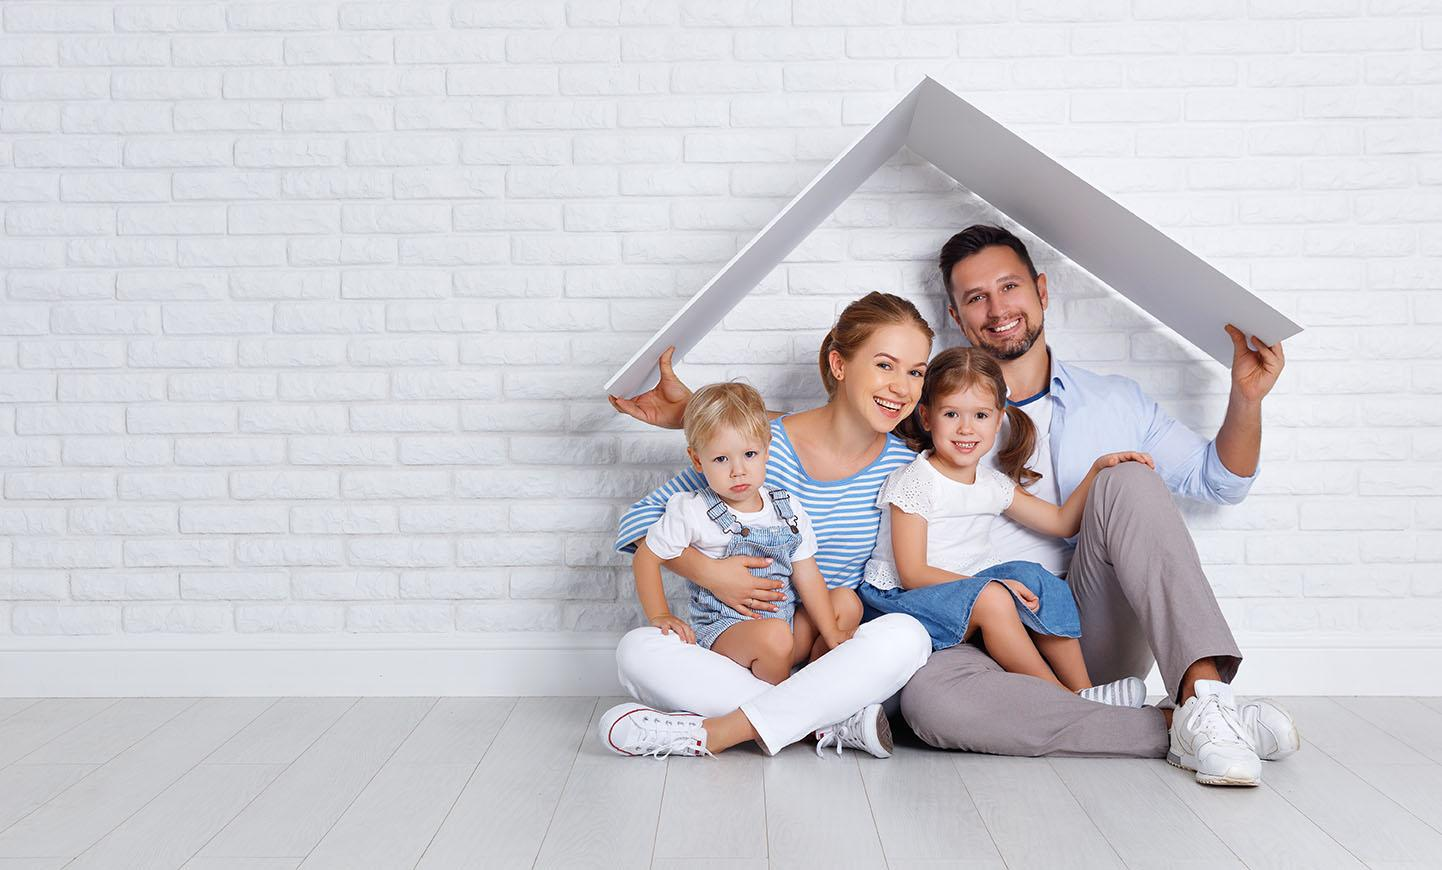 Concept housing a family: mother, father and children in a new home.